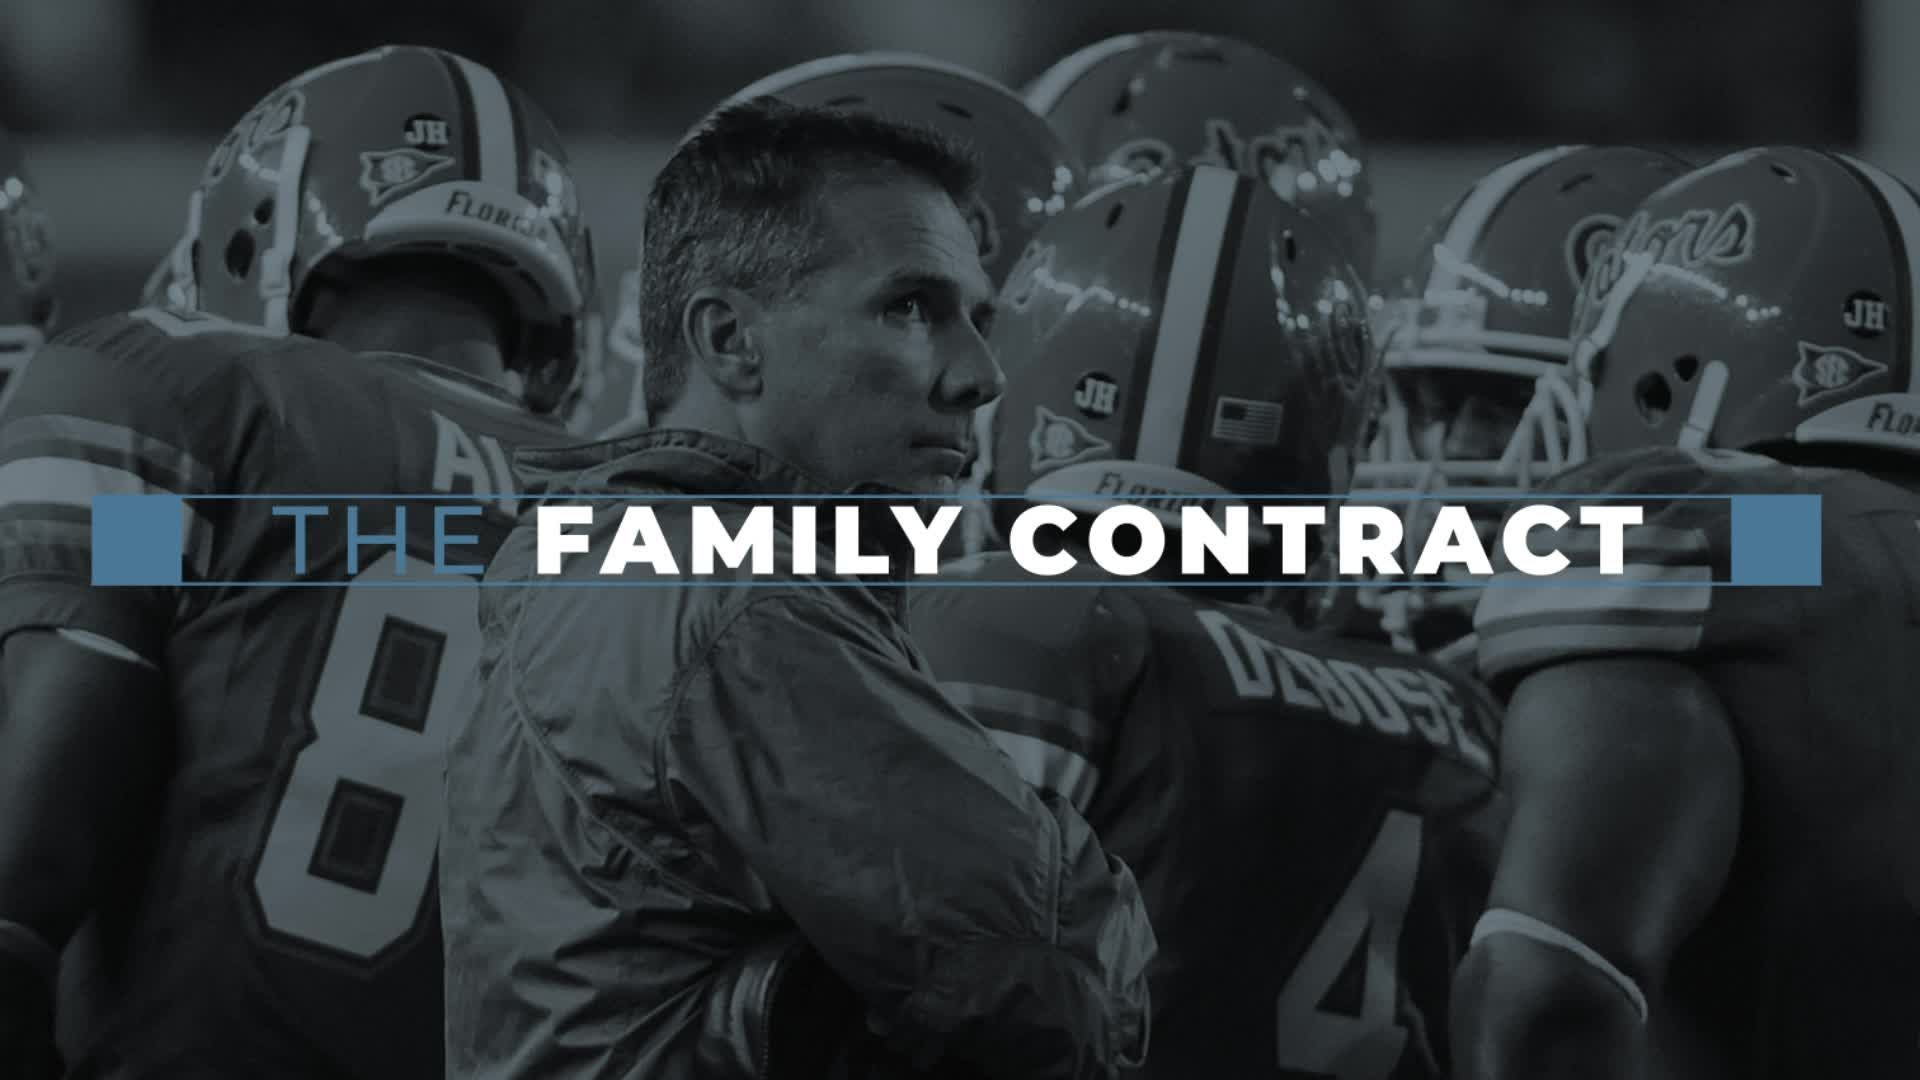 The Family Contract